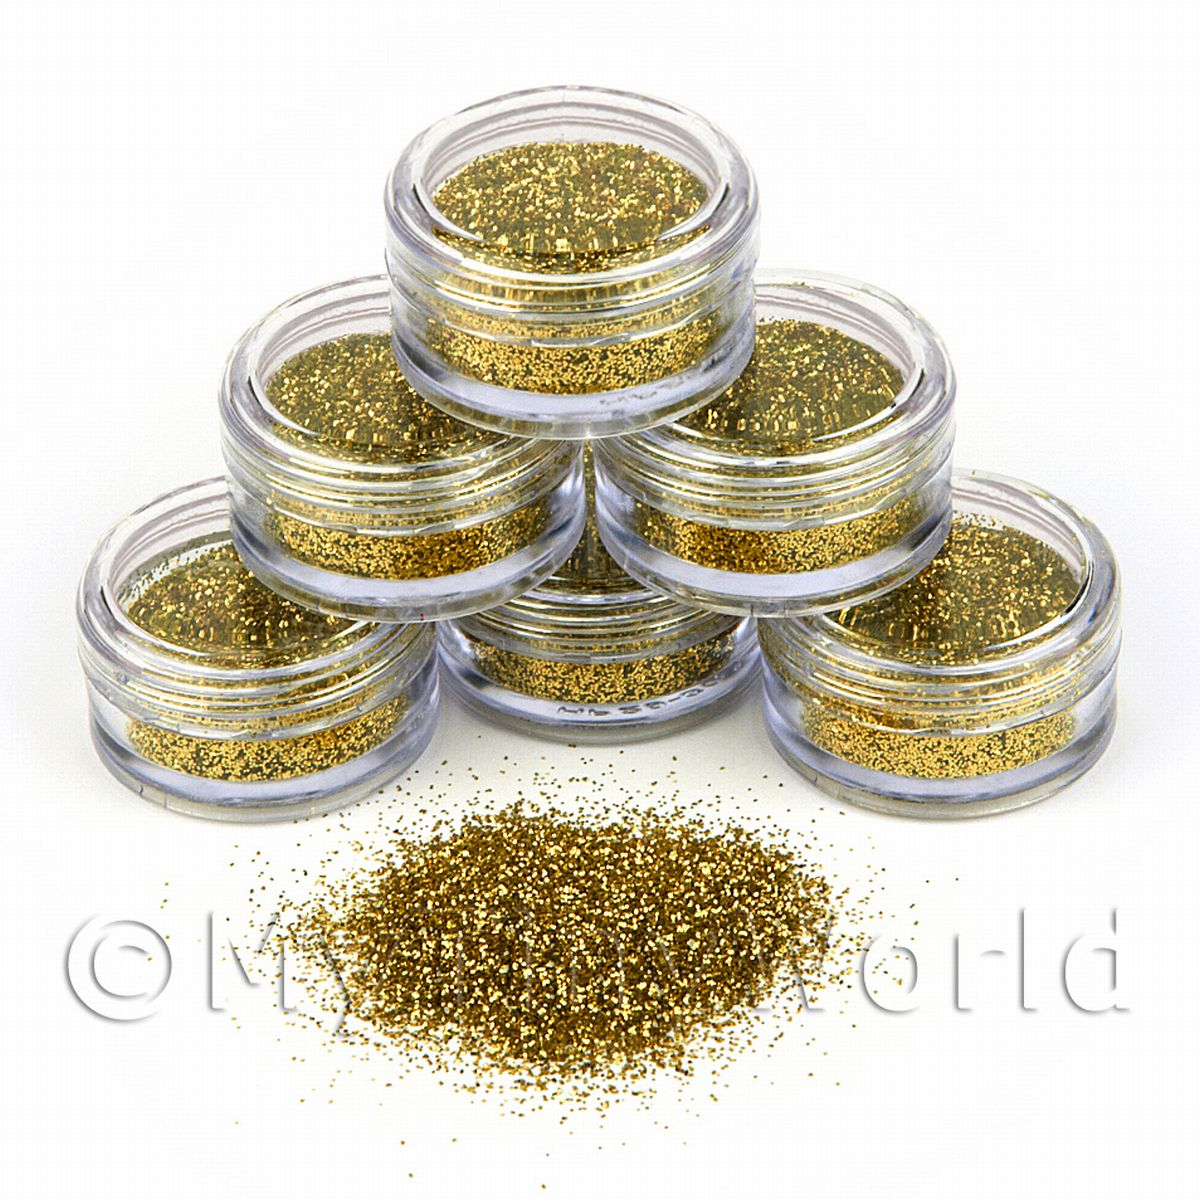 High Quality Nail Art Glitter - 2g Pot - Fools Gold